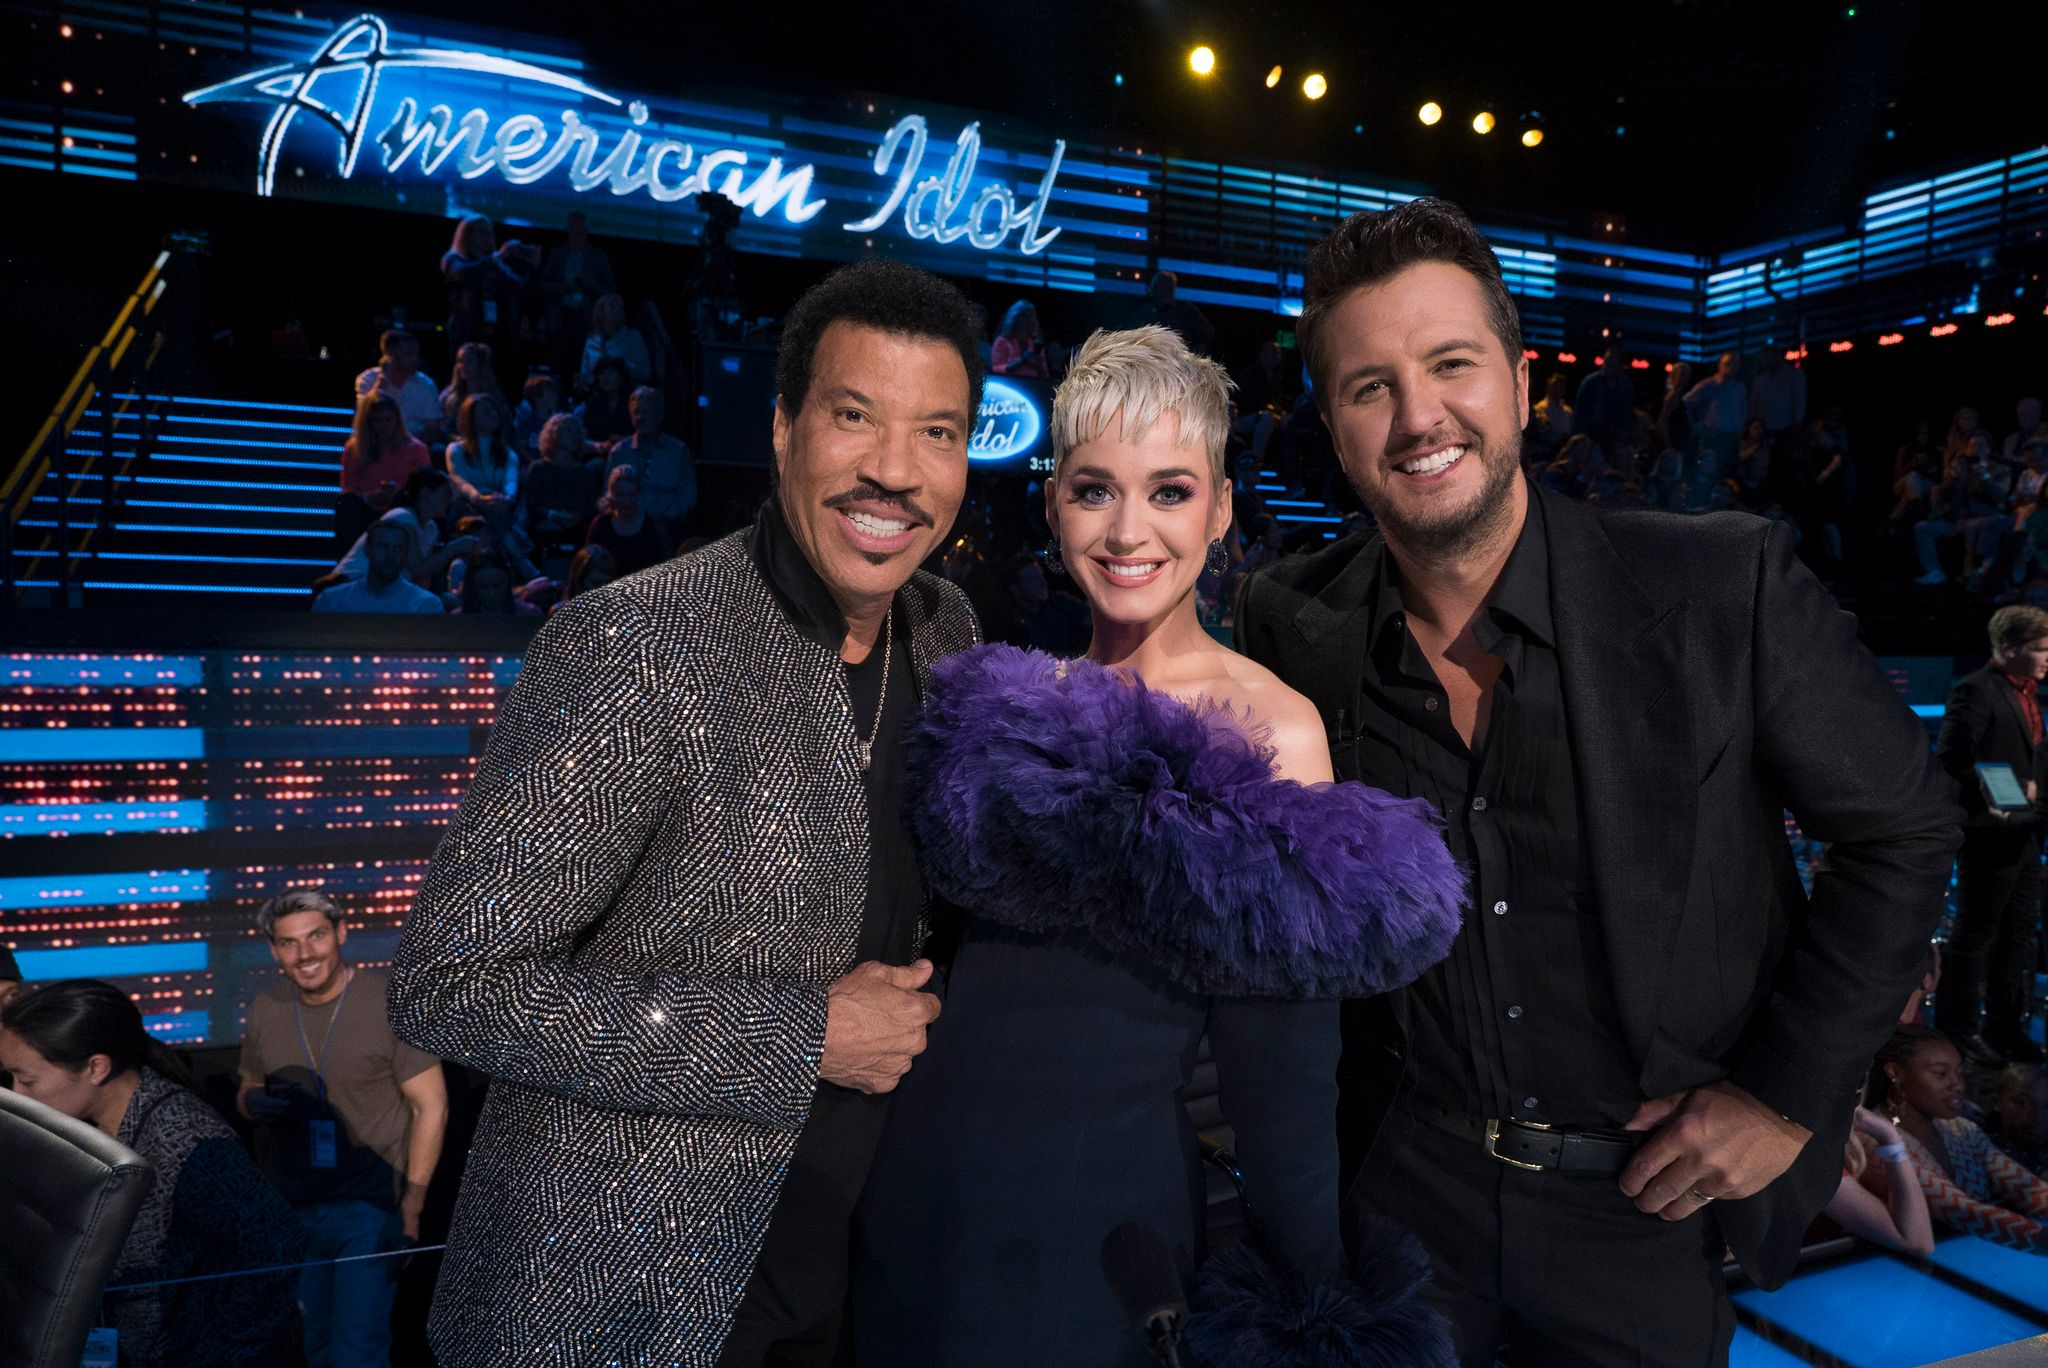 American Idol Judges Lionel Richie, Katy Perry and Luke Bryan  Photo: Getty Images